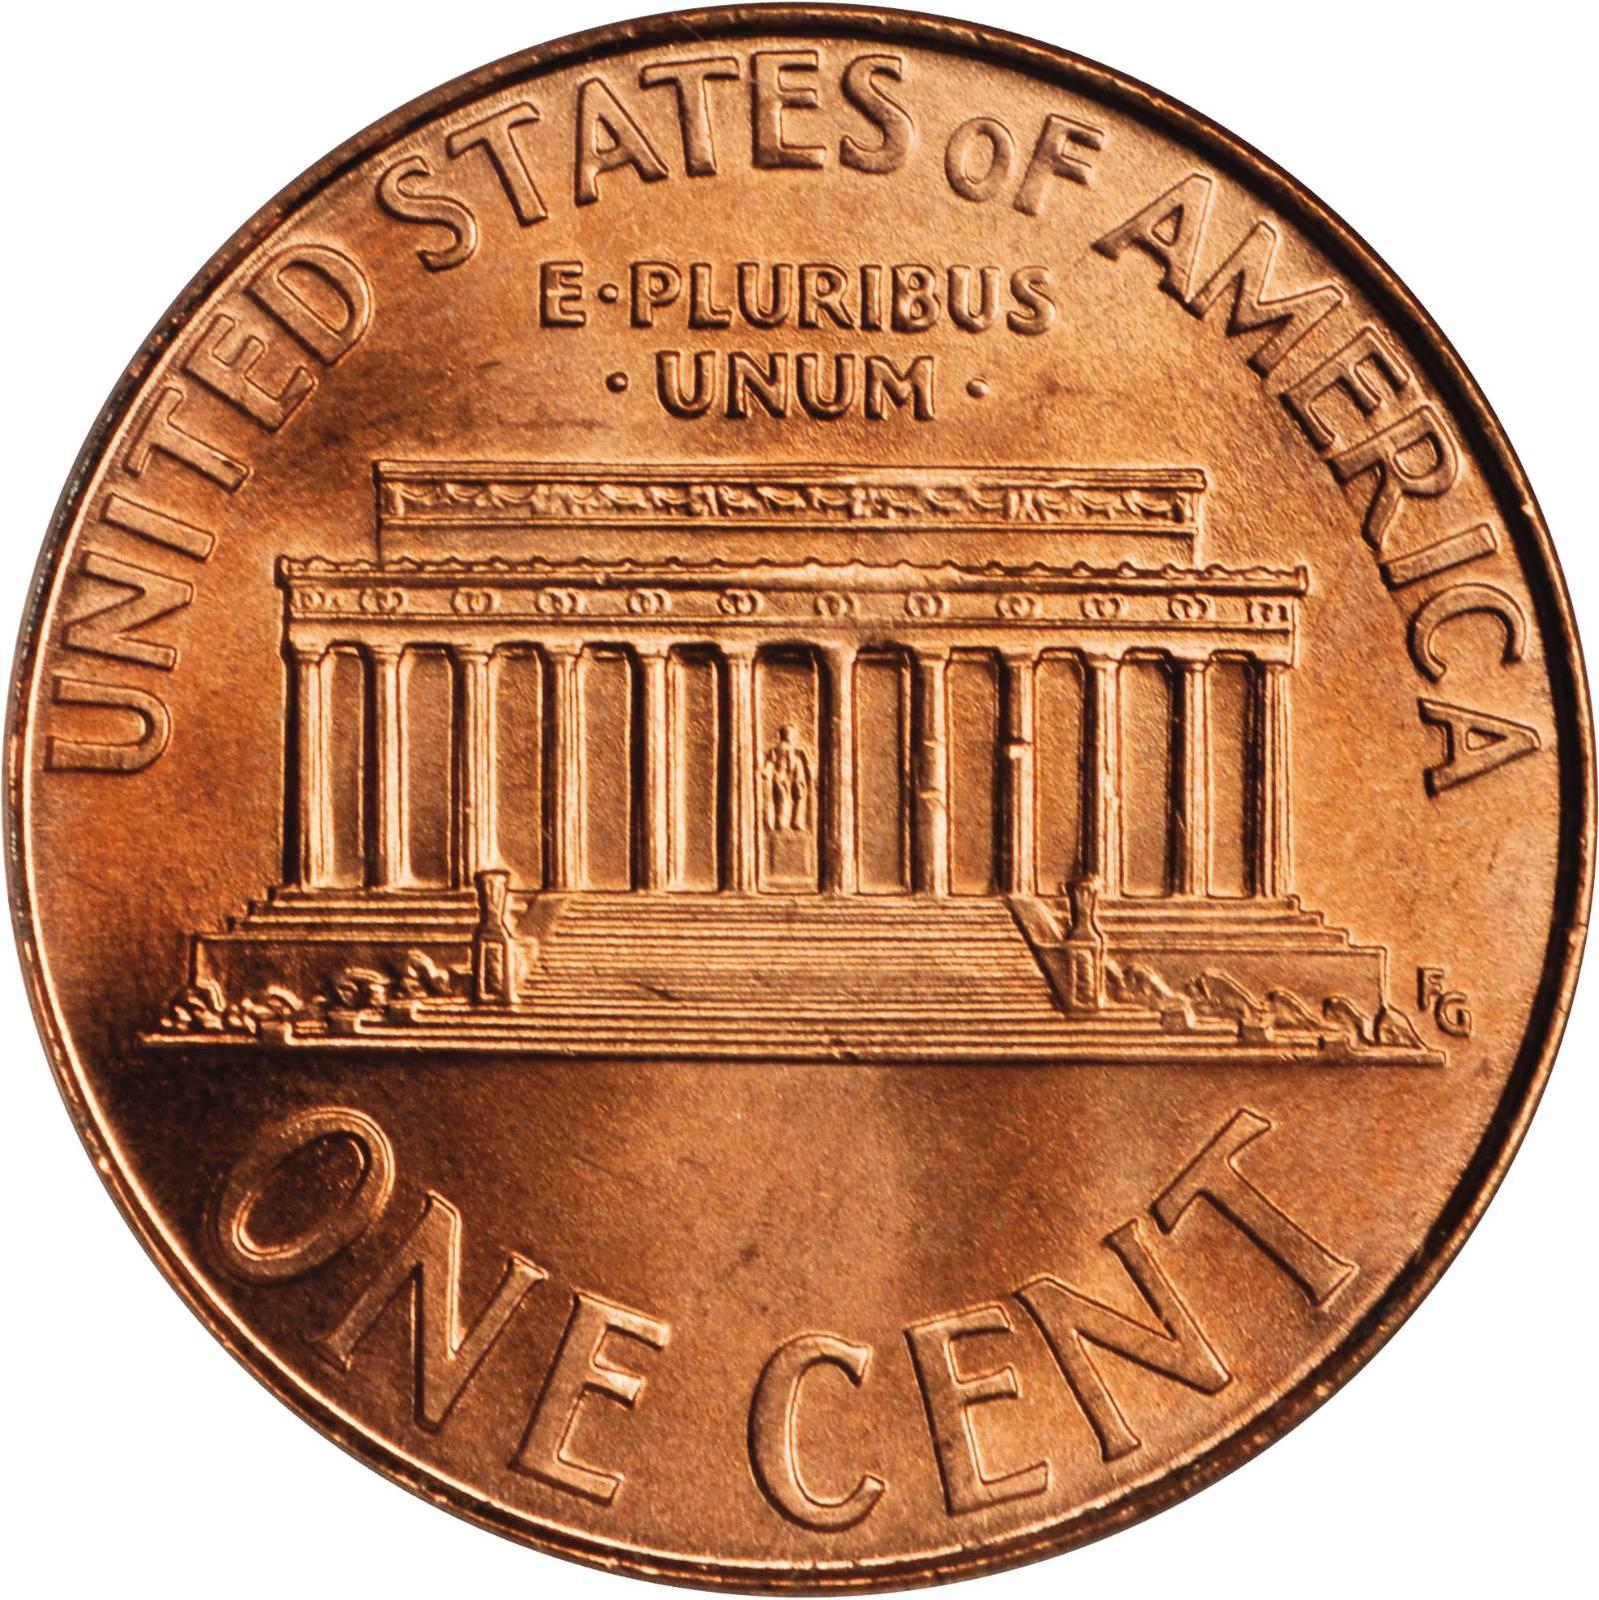 Value of 1995 d lincoln cents we appraise modern coins publicscrutiny Images